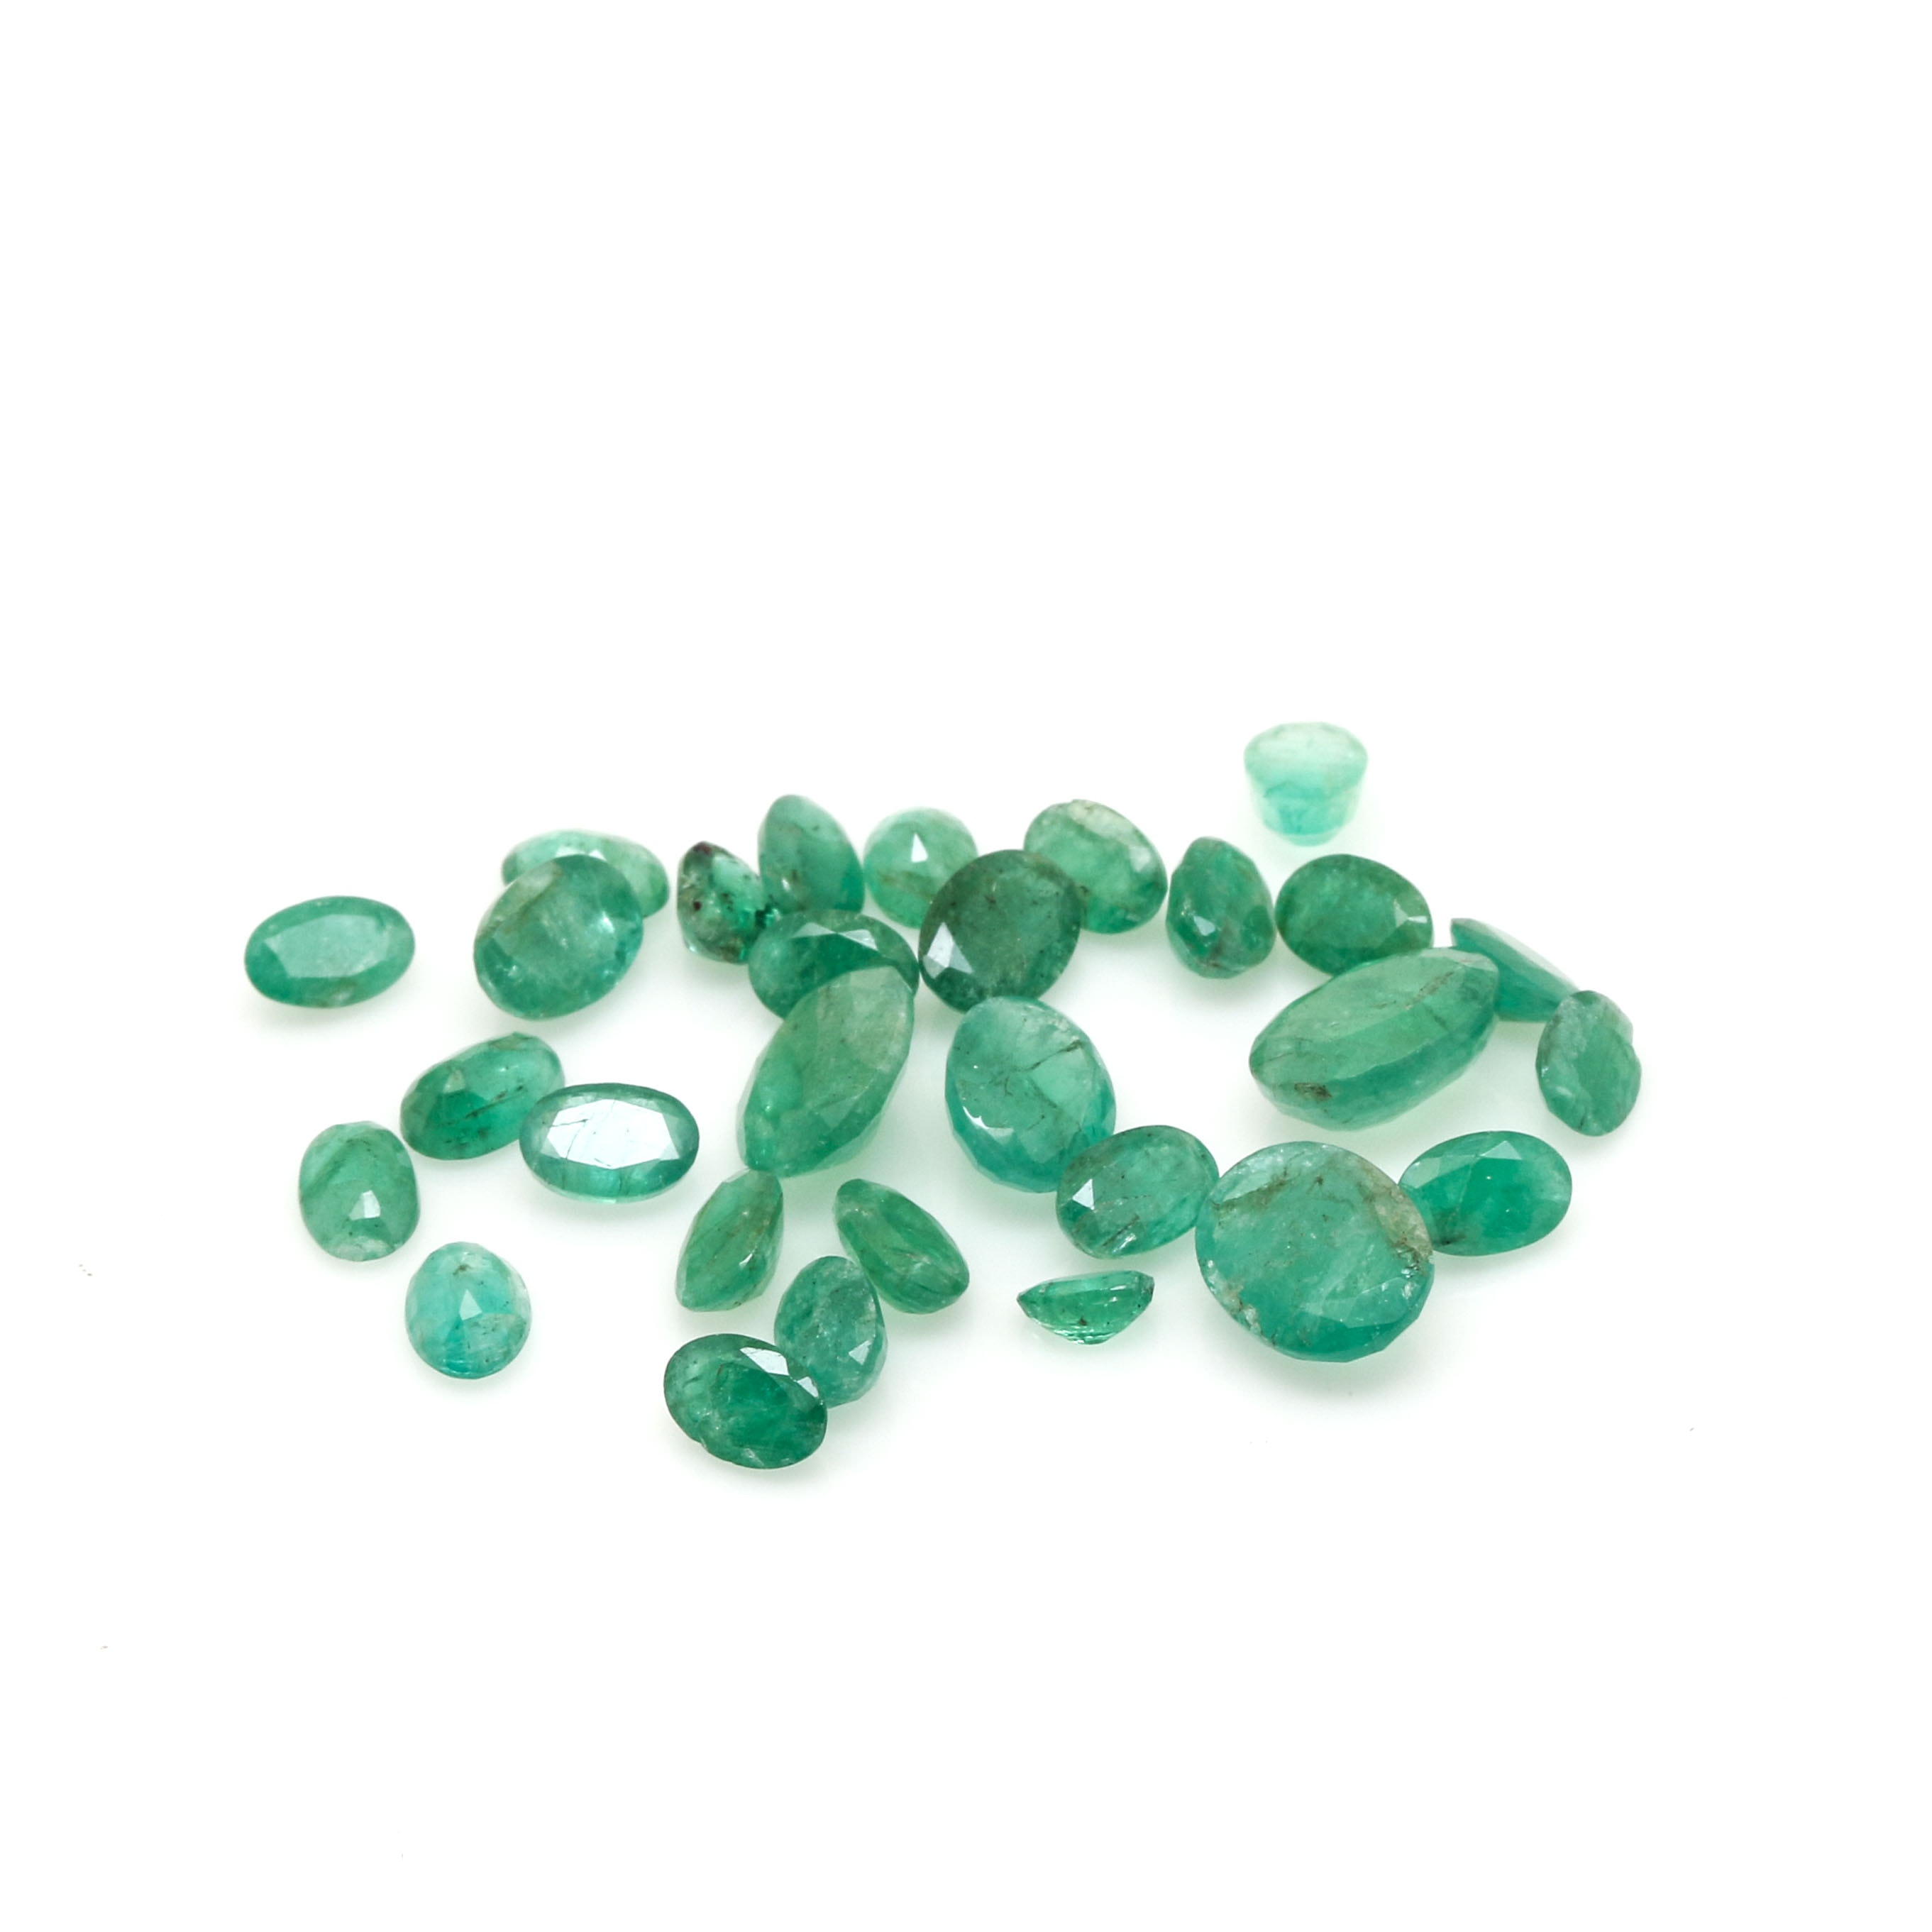 Loose 17.50 CTW Emerald Gemstones